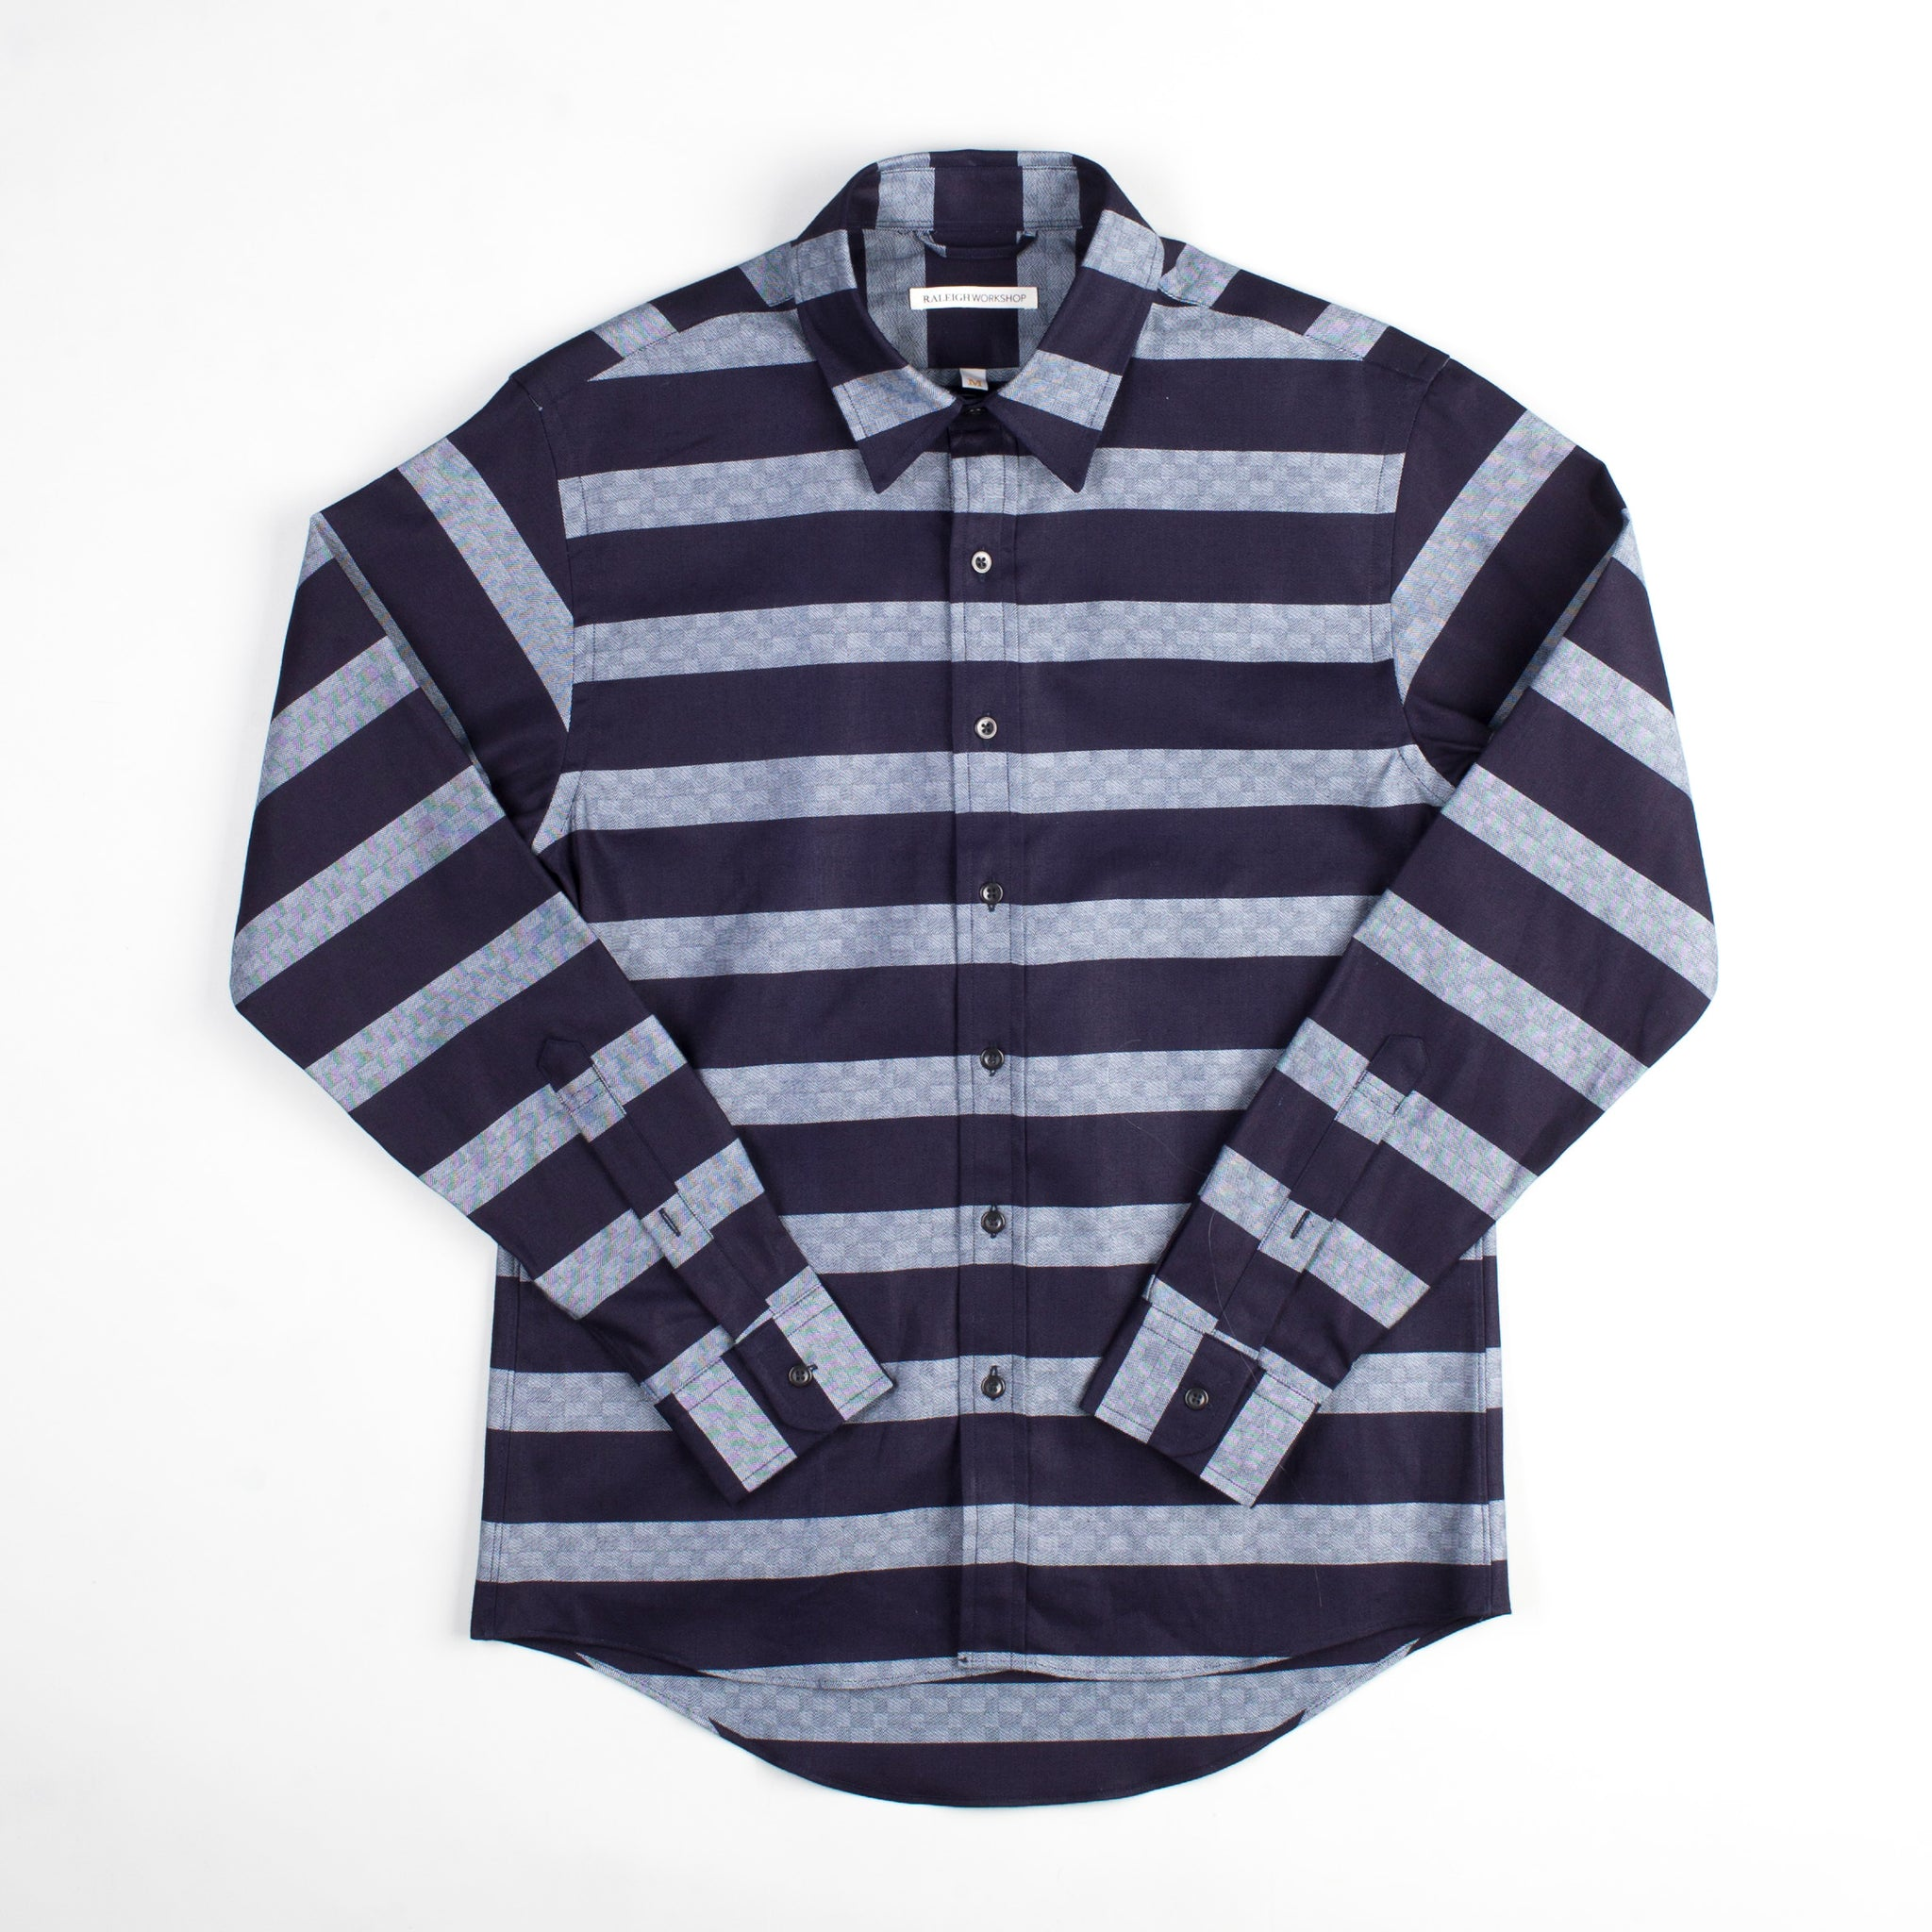 angle hover: bold indigo stripe  Raleigh Denim Workshop Classic Button-up men's shirt in indigo and gray stripes, front flat